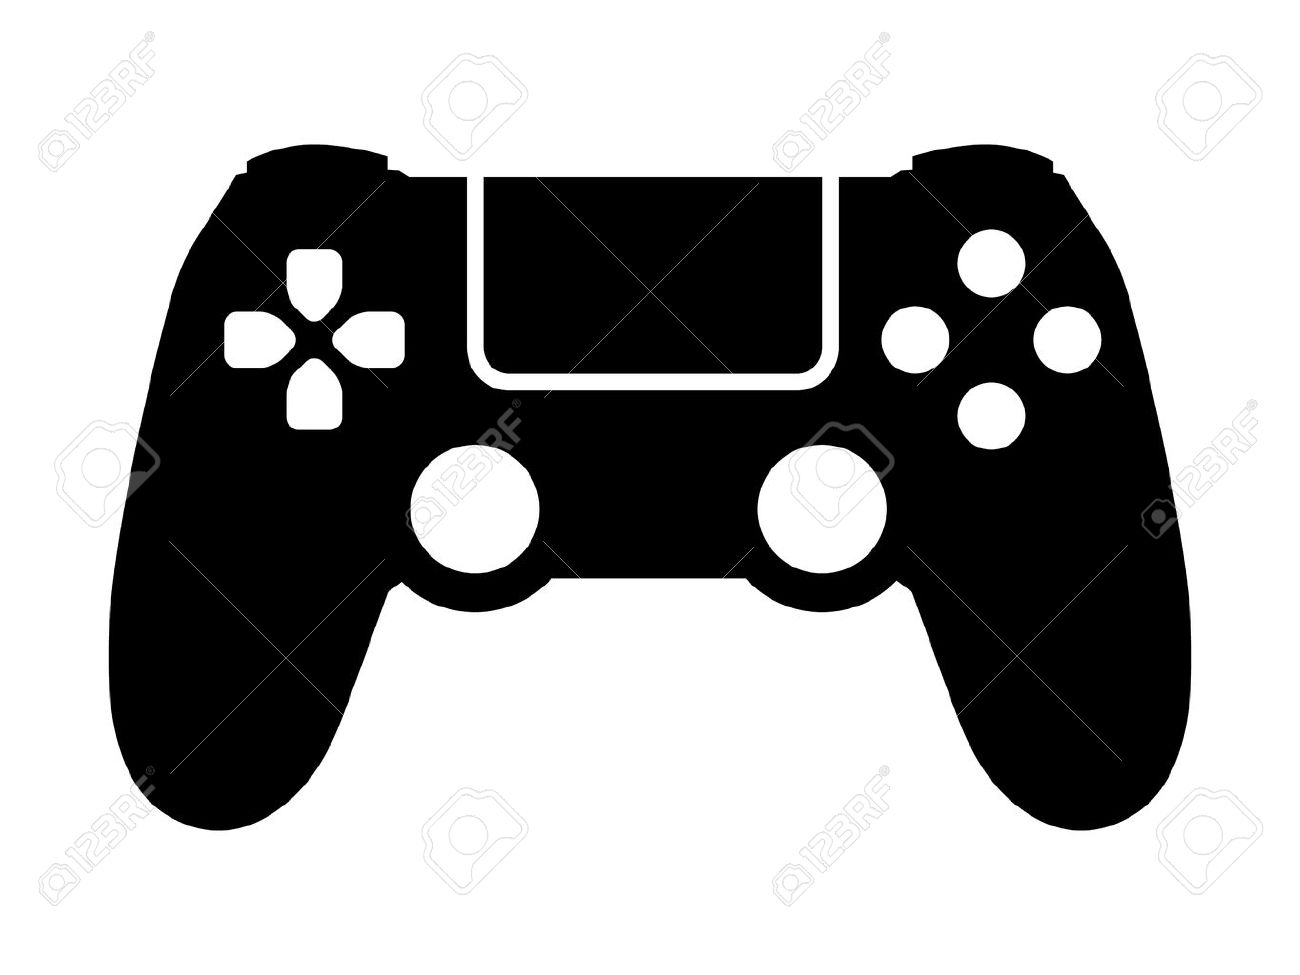 Video game controller / gamepad flat icon for apps and websites - 55731734